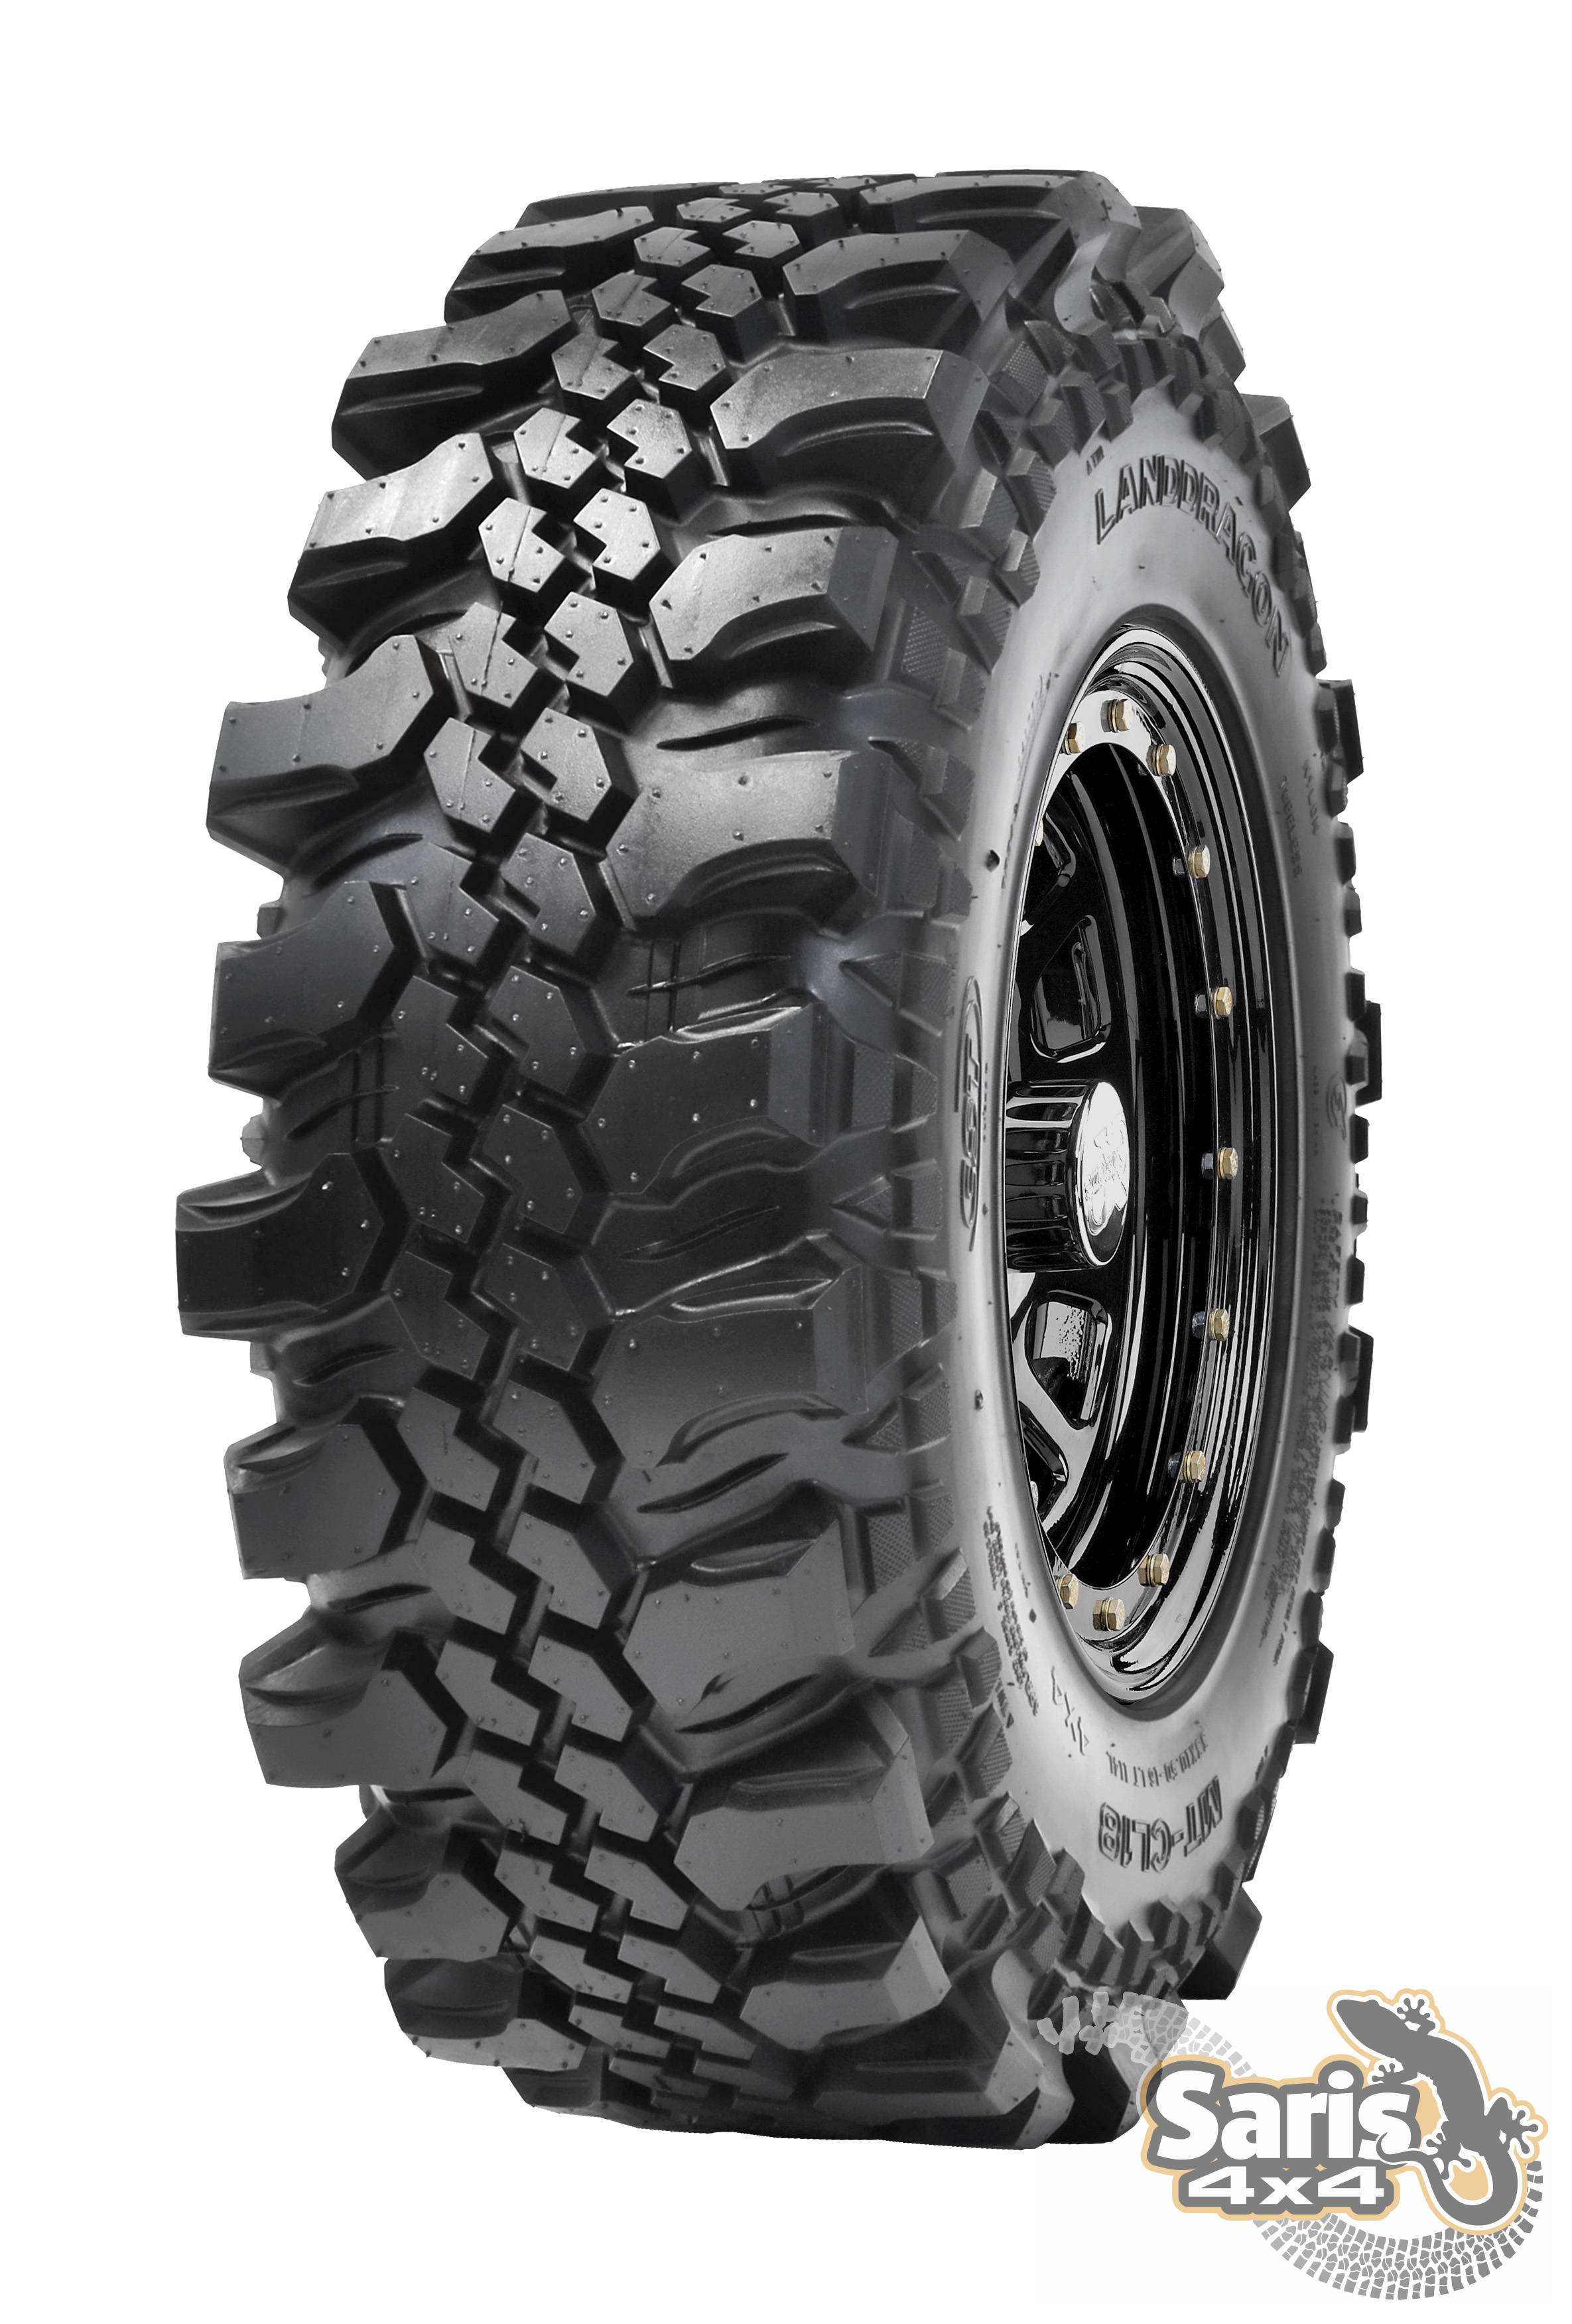 Goede CST Offroad banden - Saris4x4 BY-26